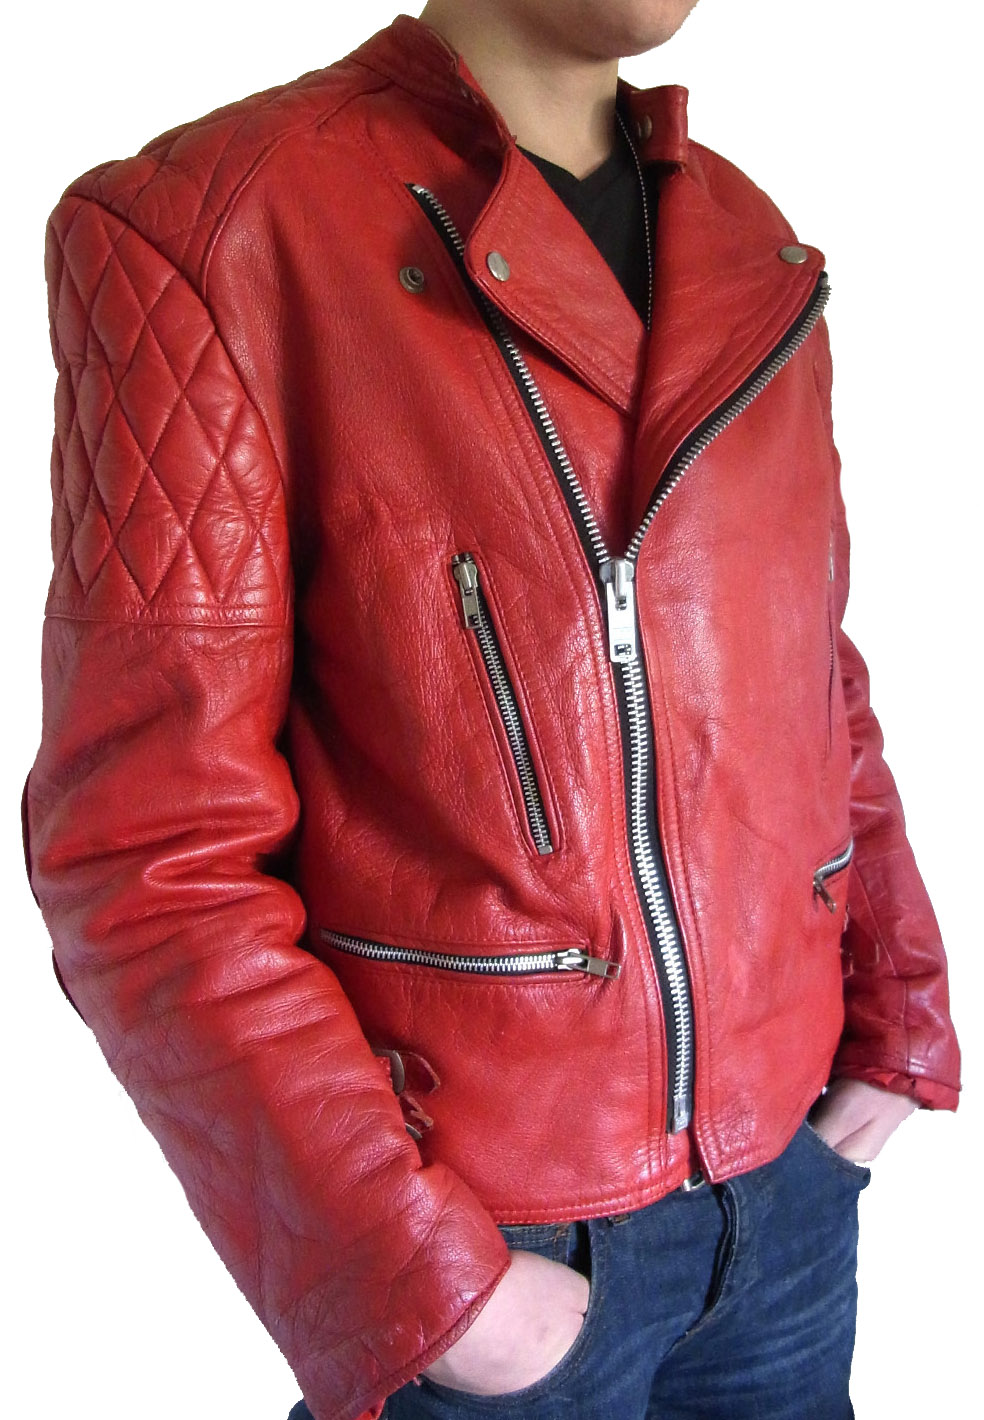 Handmade Custom New Men Stylish With Quilted Shoulders Leather ...